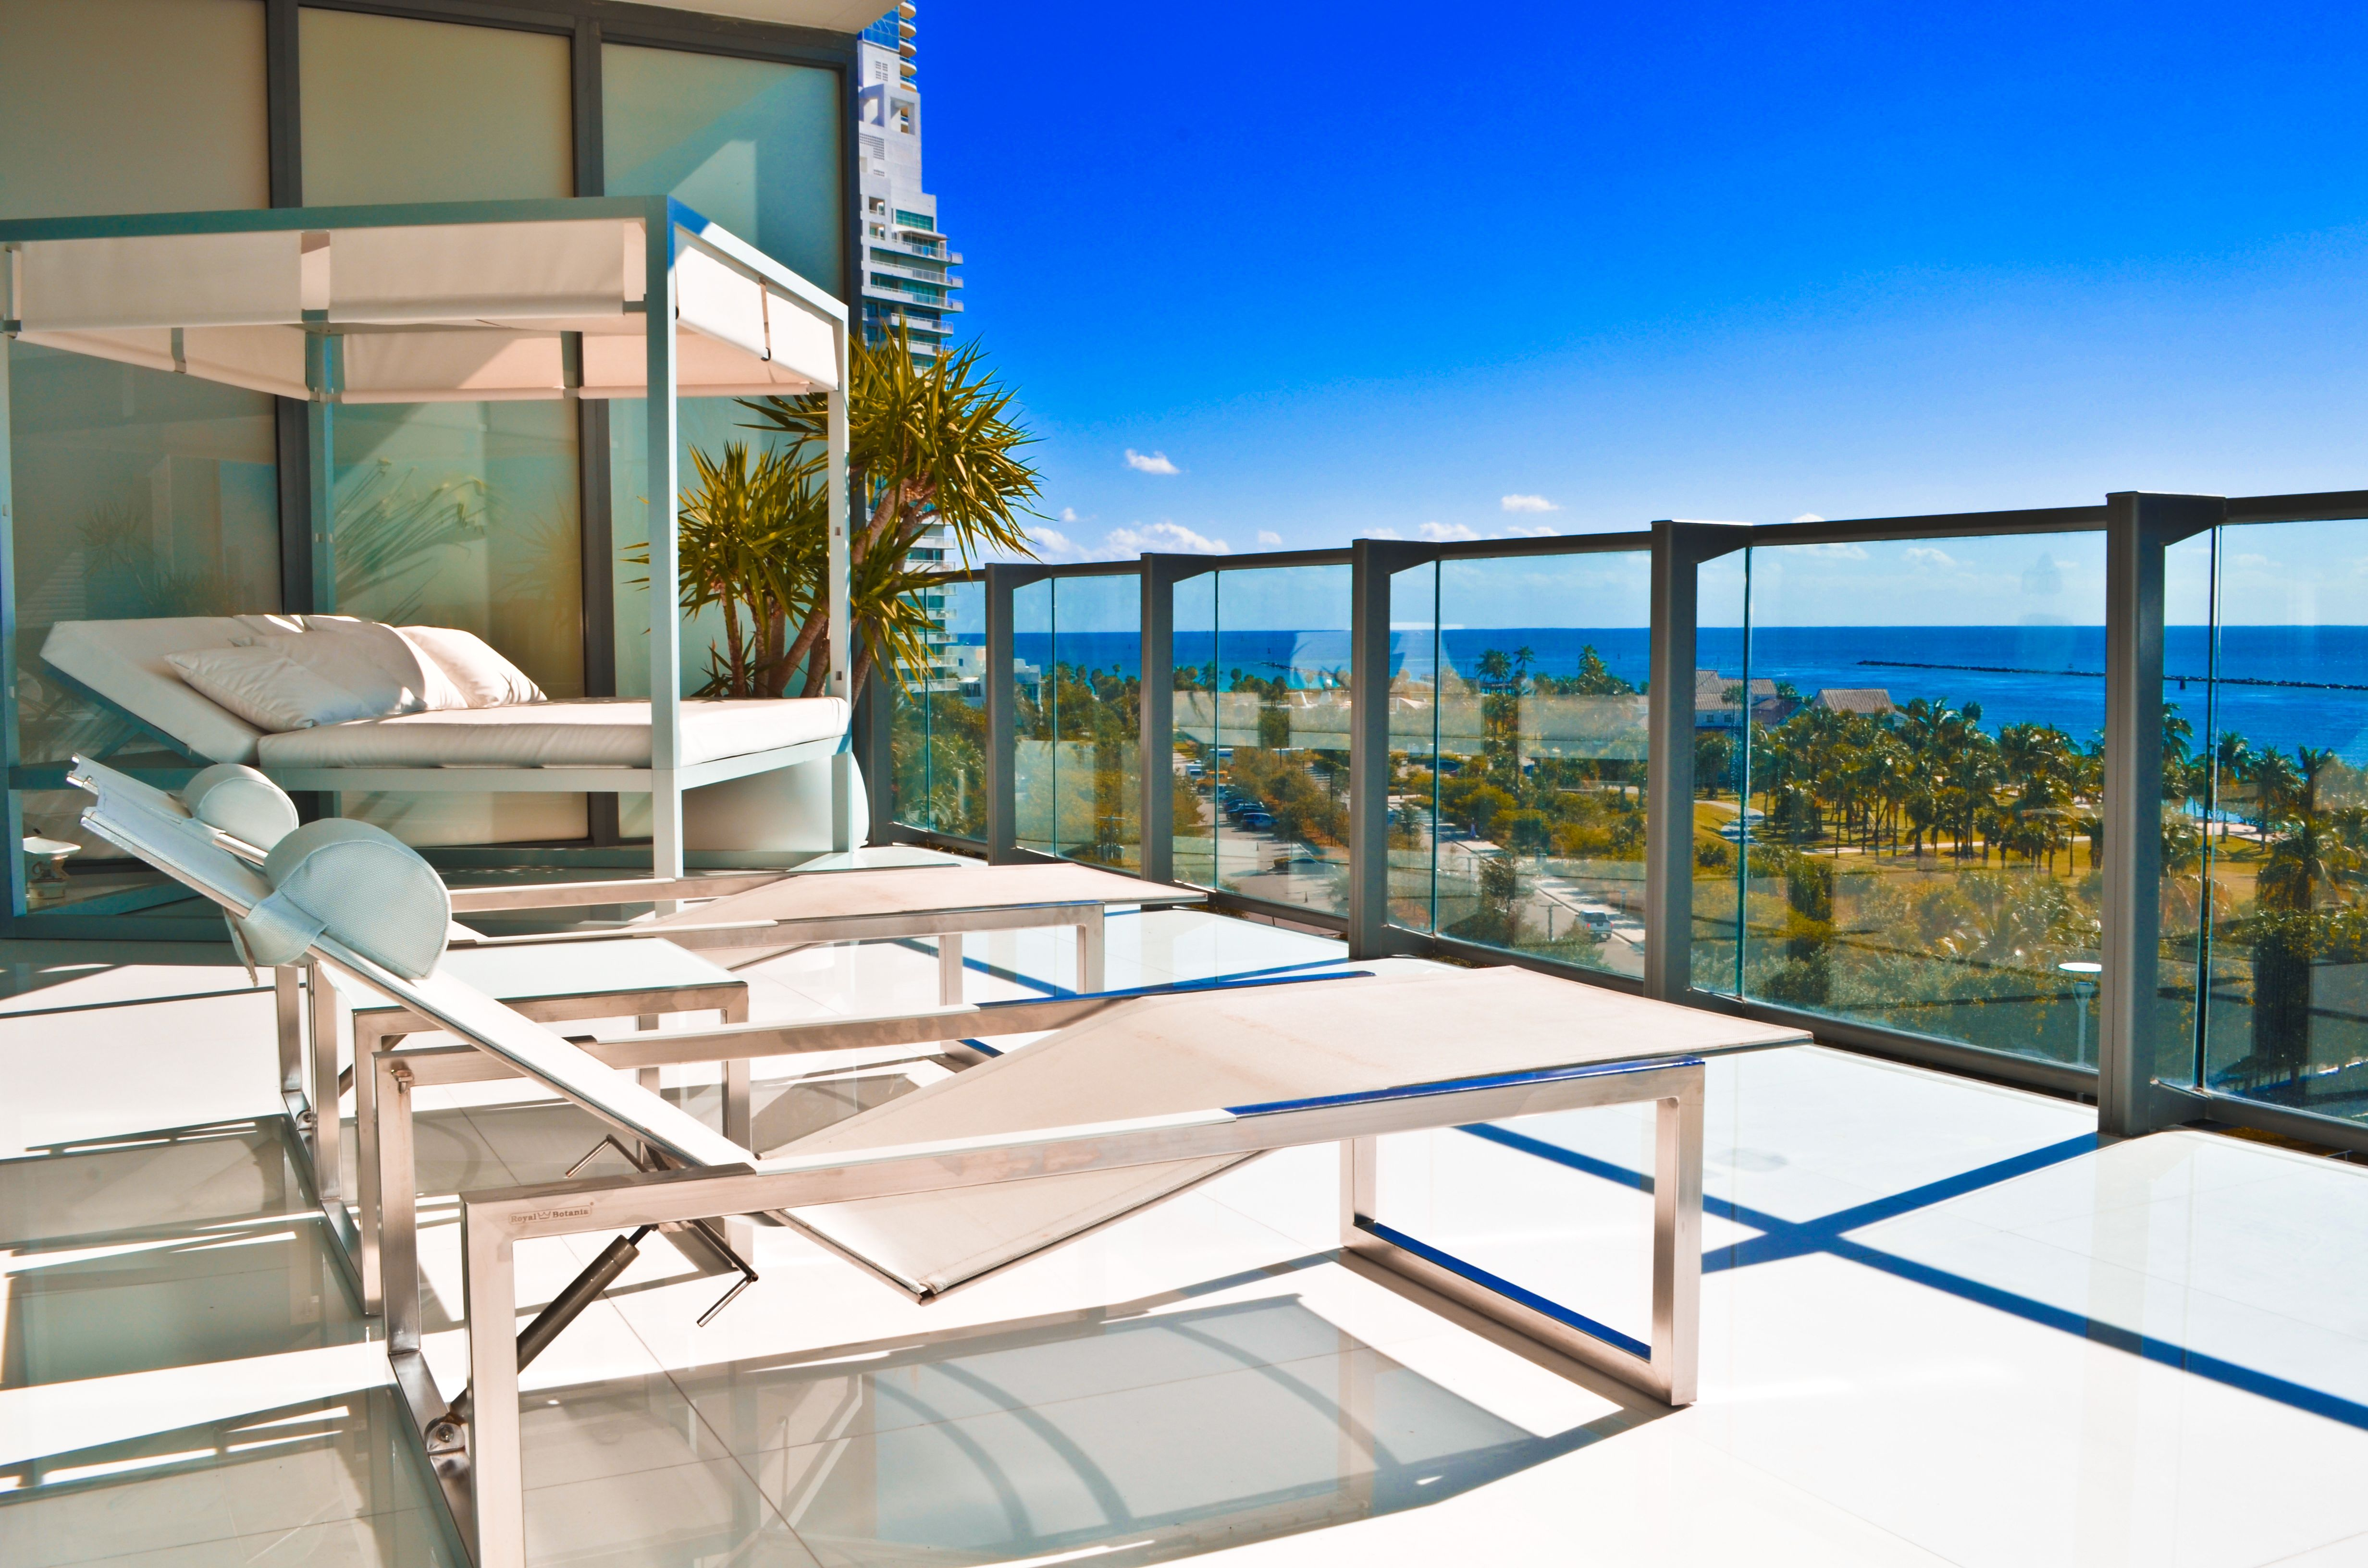 Balcony / Ocean View / Outdoor Furniture / Daybed with